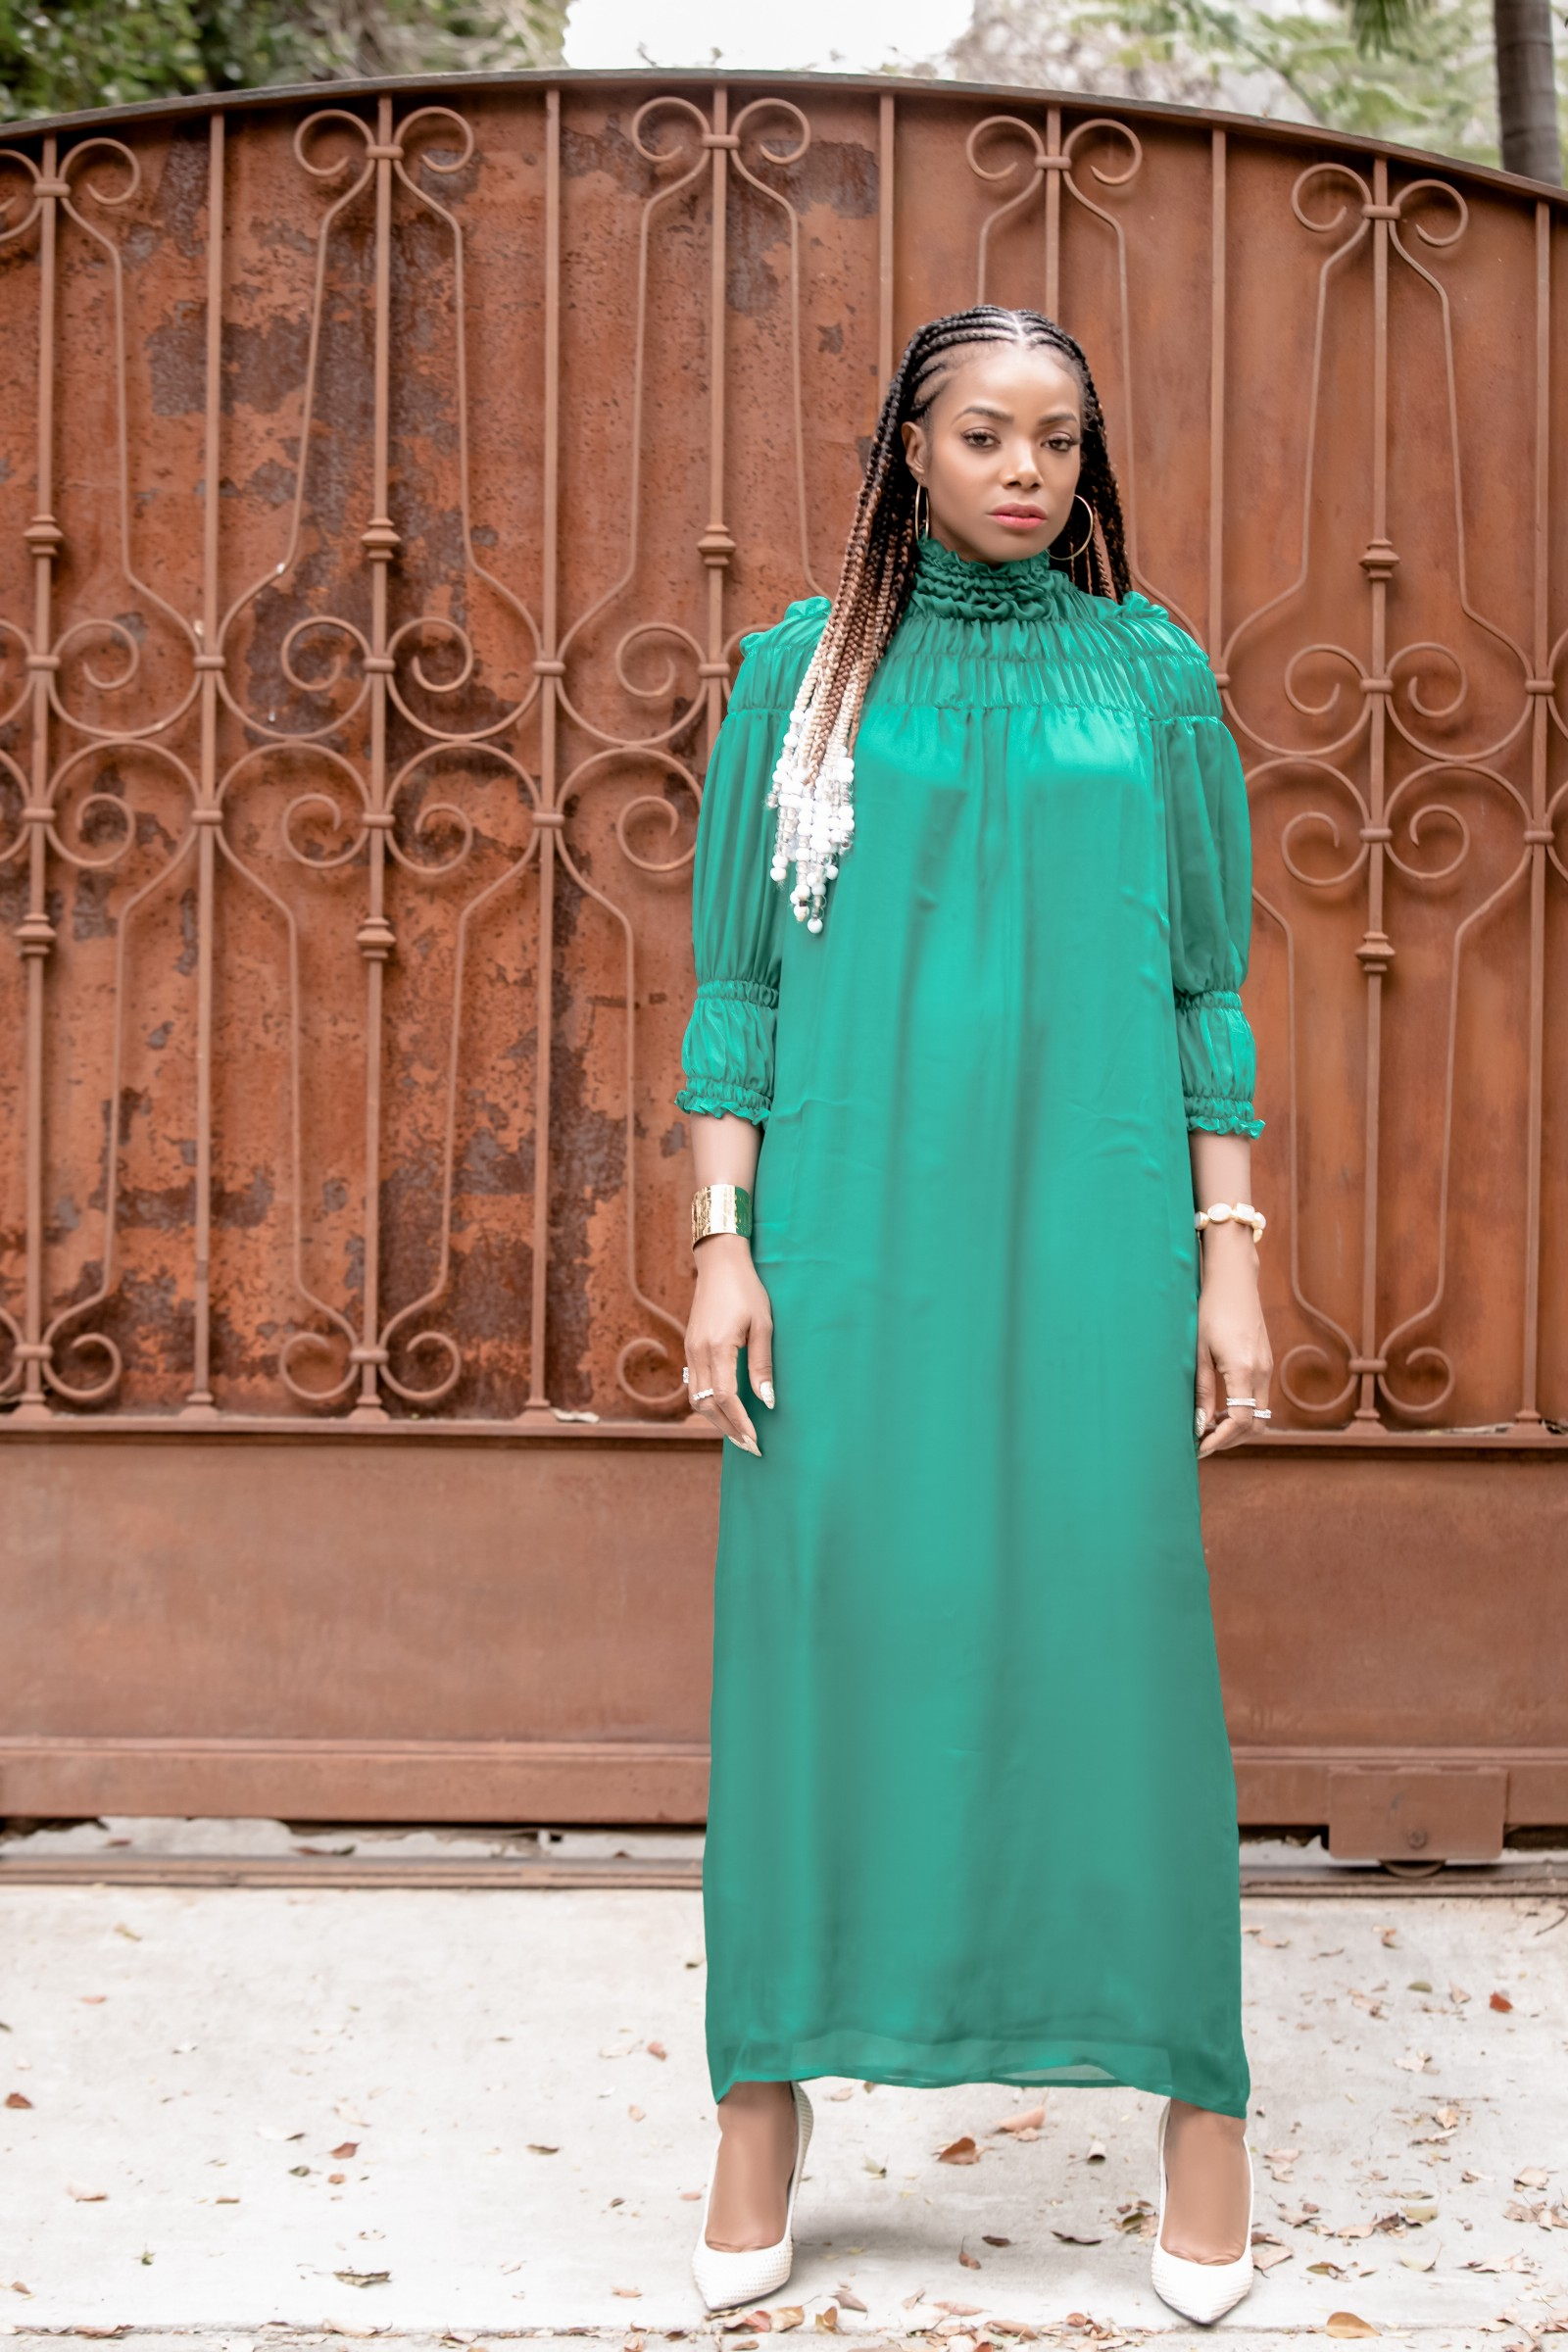 Tai Beauchamp wearing the emerald green maxi dress by Bastet Noir